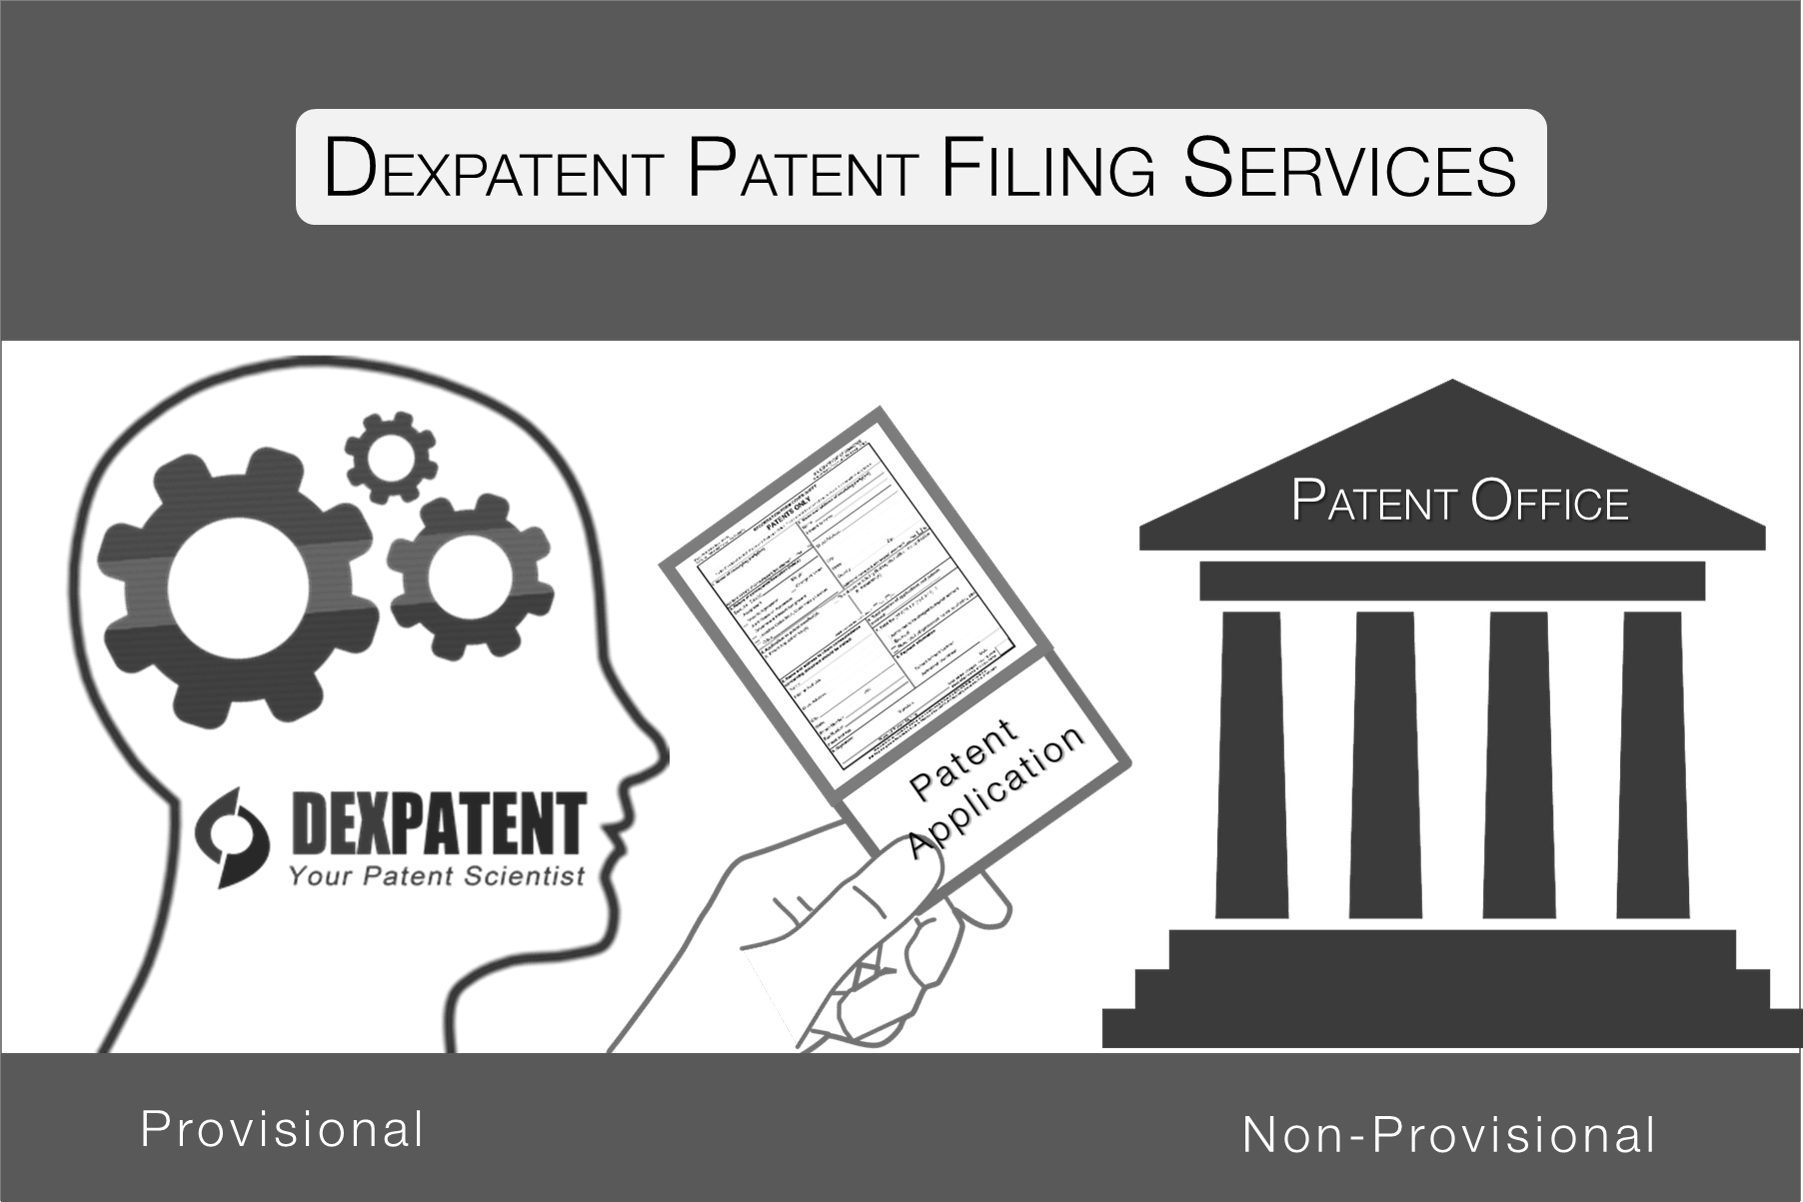 We Carry Out Patent Prosecution With Support Of Partnered Attorneys And Agents Who Carryout Legal Proceedings